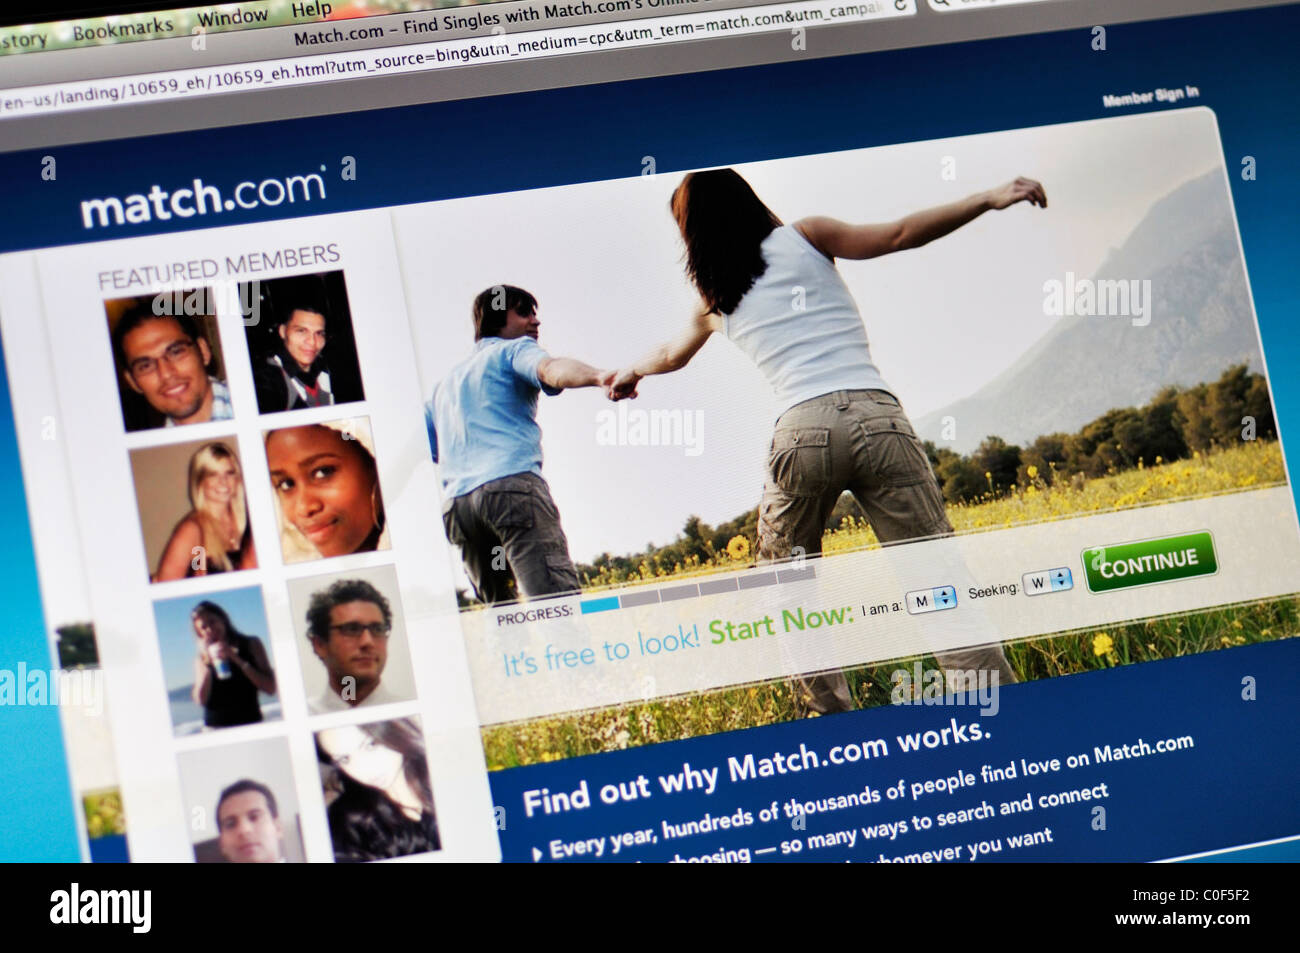 Match.com - online dating website - Stock Image